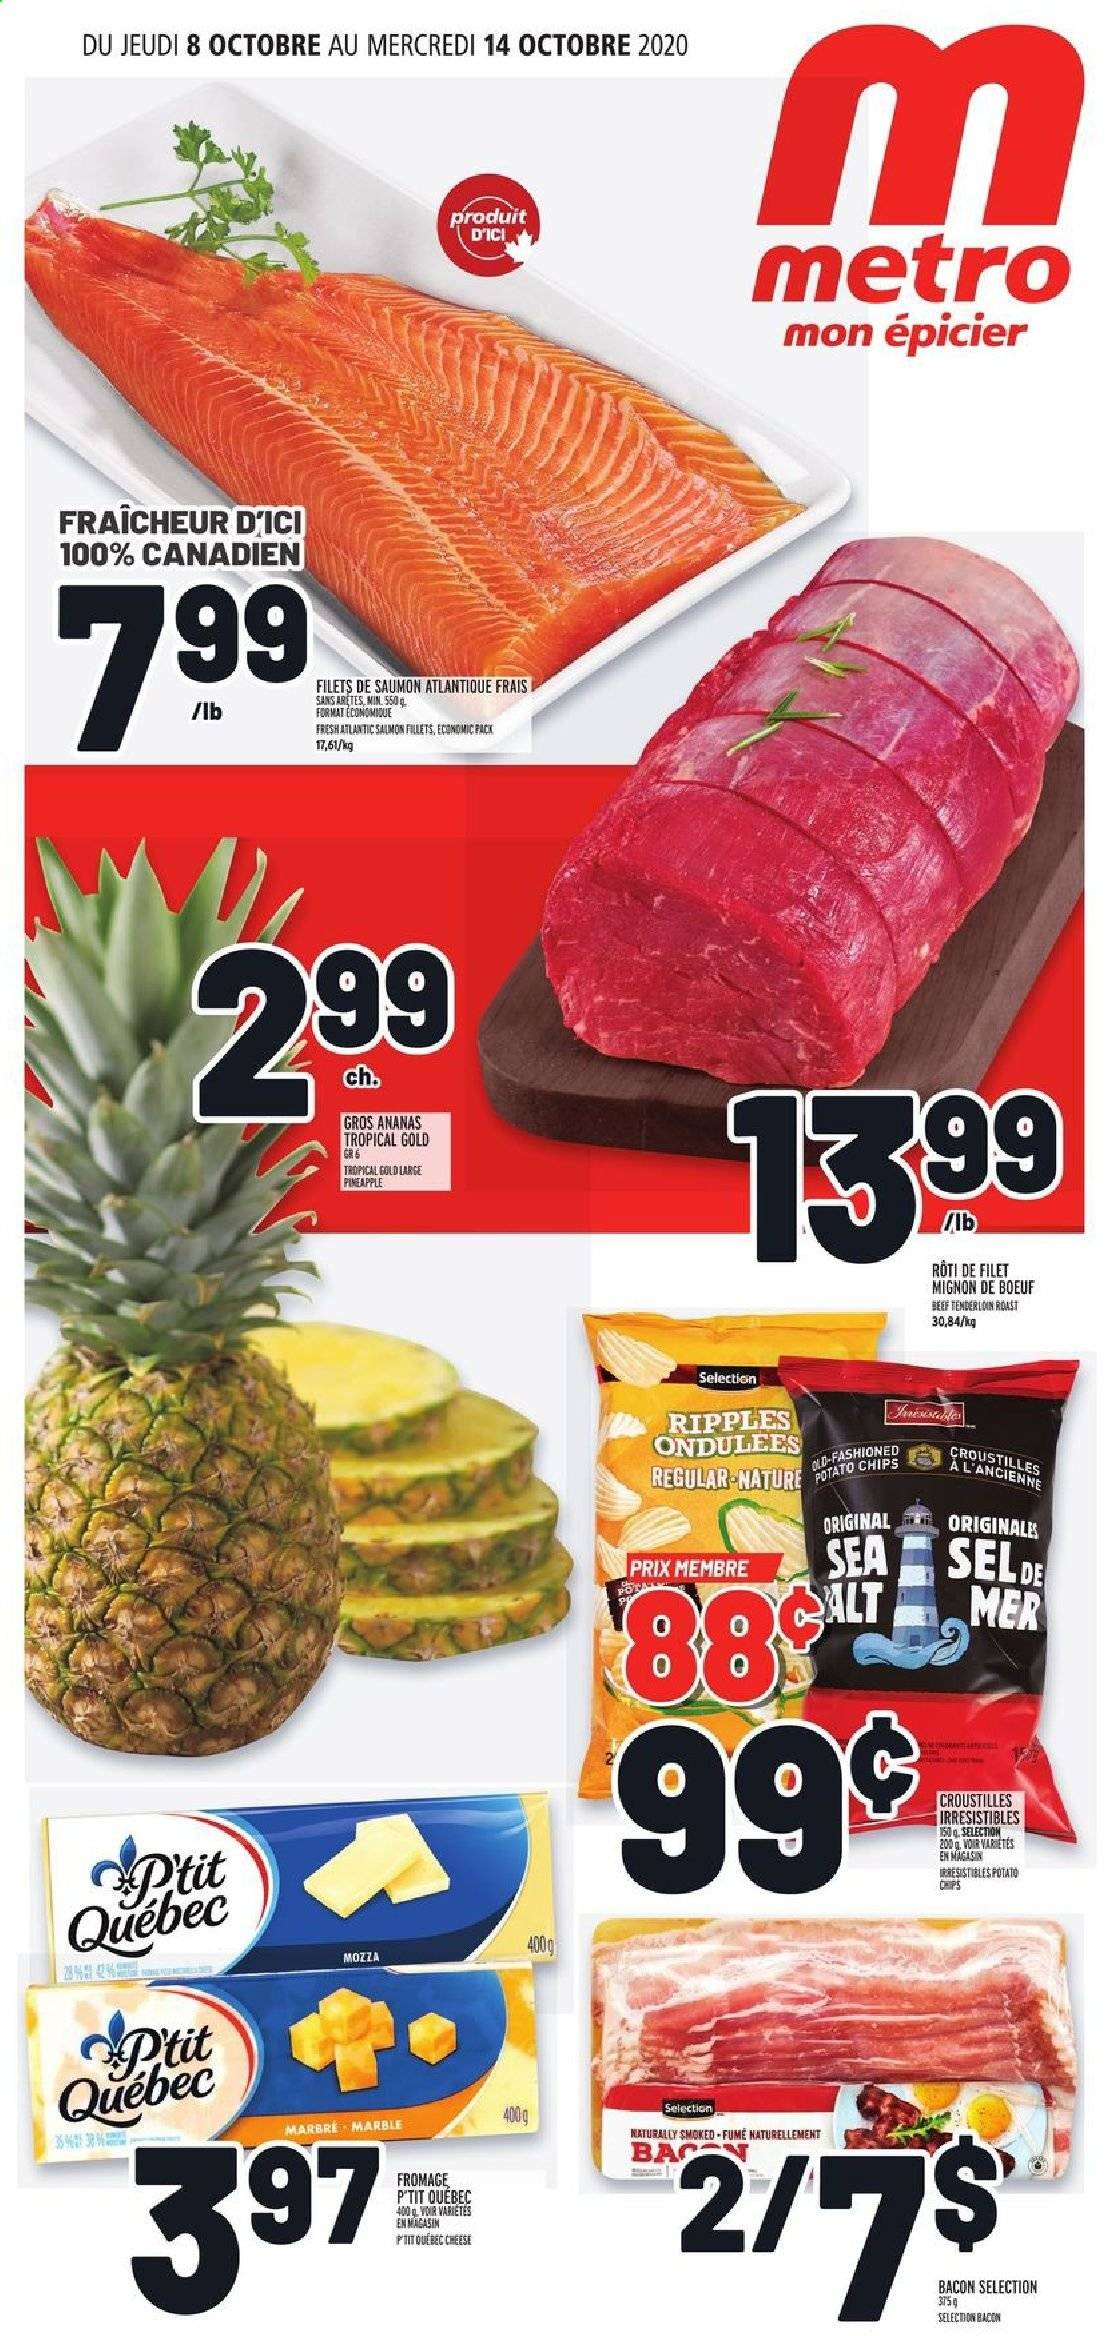 Metro Flyer - October 08, 2020 - October 14, 2020 - Sales products - bacon, beef meat, salmon, pineapple, potato chips, chips, tenderloin, cheese, beef tenderloin, saumon, ananas, filet mignon, fromage, marble, sel, metro, roast. Page 1.